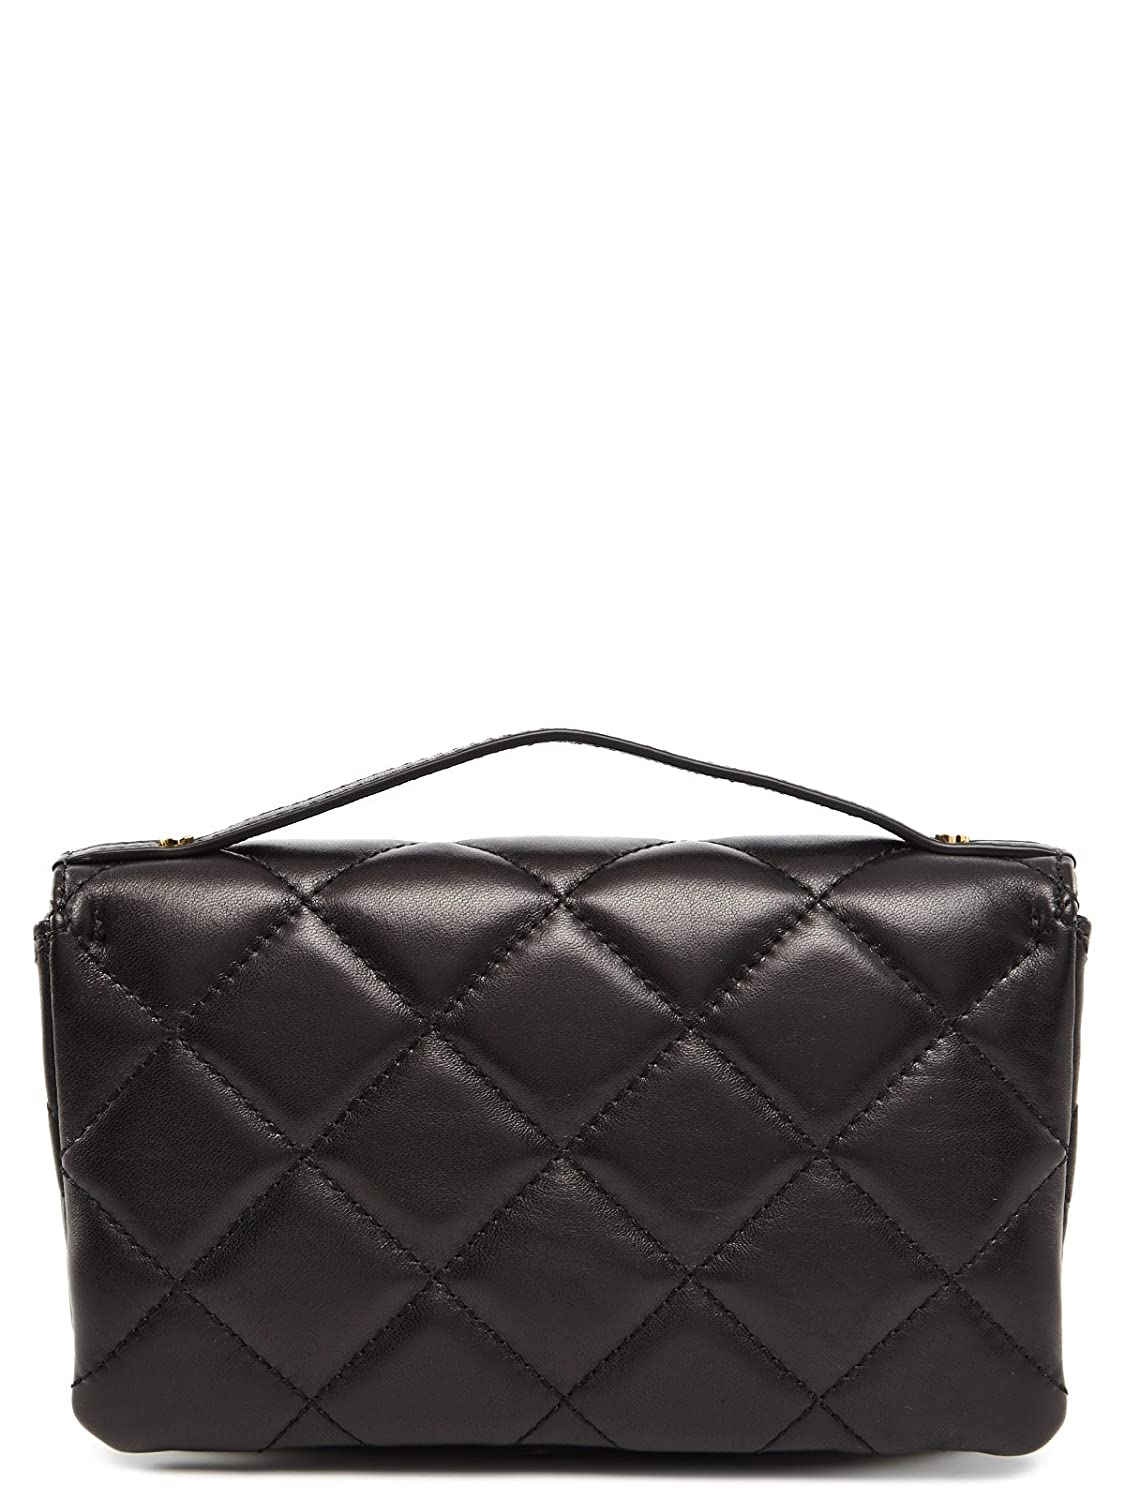 ad9f38cad11b Amazon.com: Michael Kors Sloan Small Quilted Messenger Black Leather: Shoes